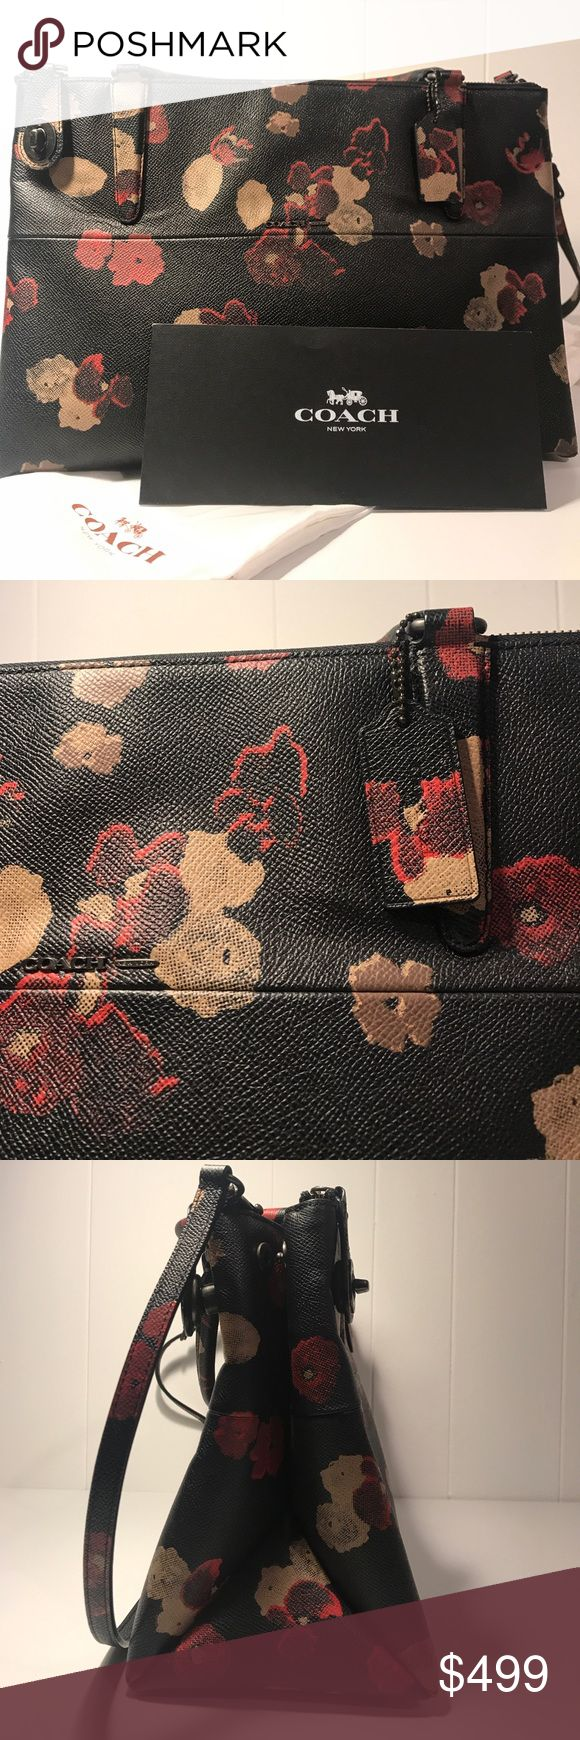 "COACH borough floral satchel Finished by hand in textured leather with a digitized 1930s print, it comes with a detachable strap for shoulder or crossbody wear. Inside open pockets. Zip-top closure, fabric lining. Handles with 4 drop. Longer strap with 20"" drop for shoulder or crossbody wear. NEW NEVER USED just don't have tags, comes with sleeve Coach Bags Satchels"